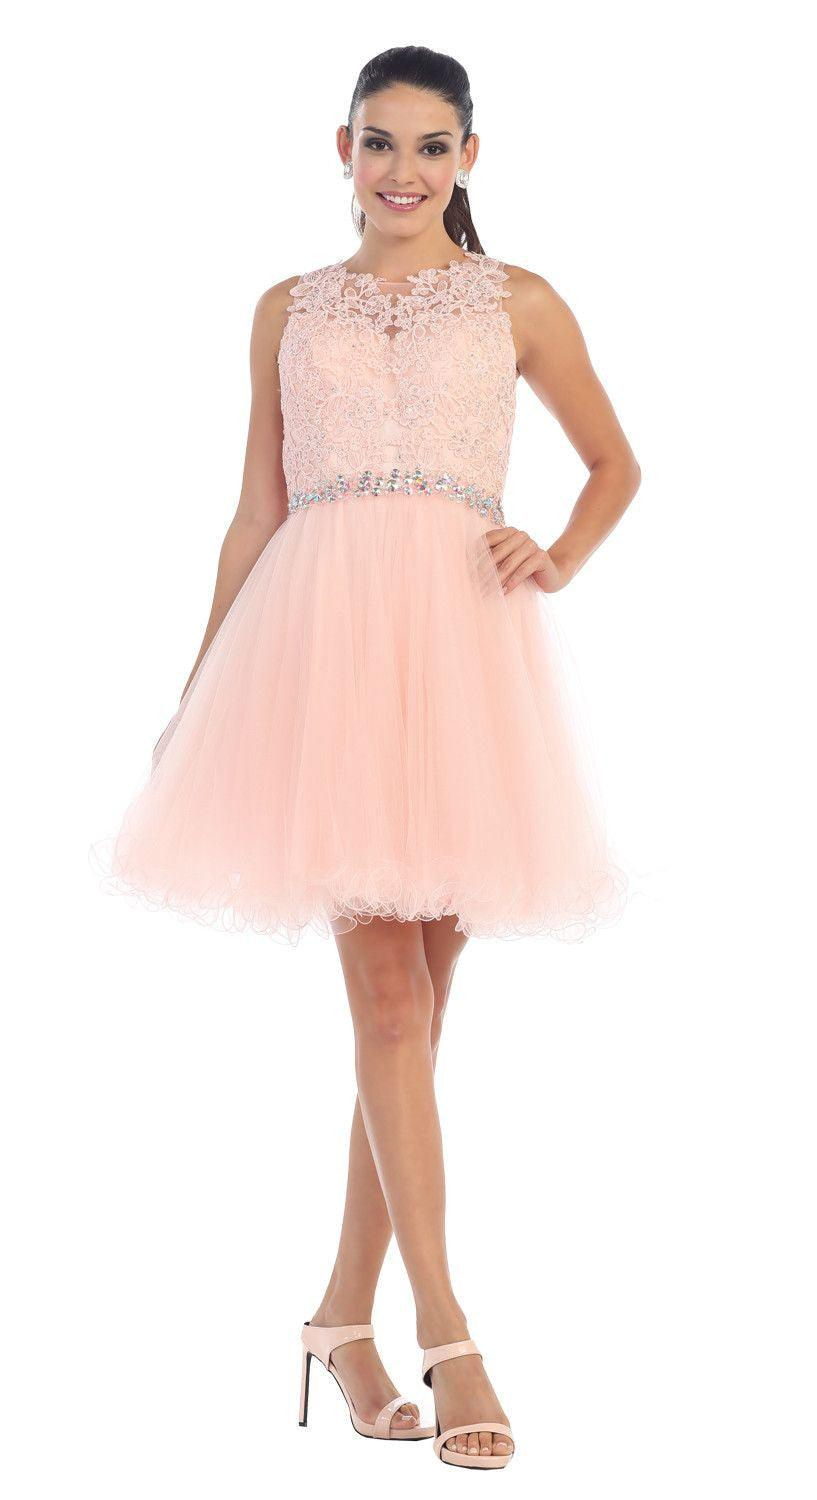 Short Prom Homecoming Graduation Dress - The Dress Outlet Blush